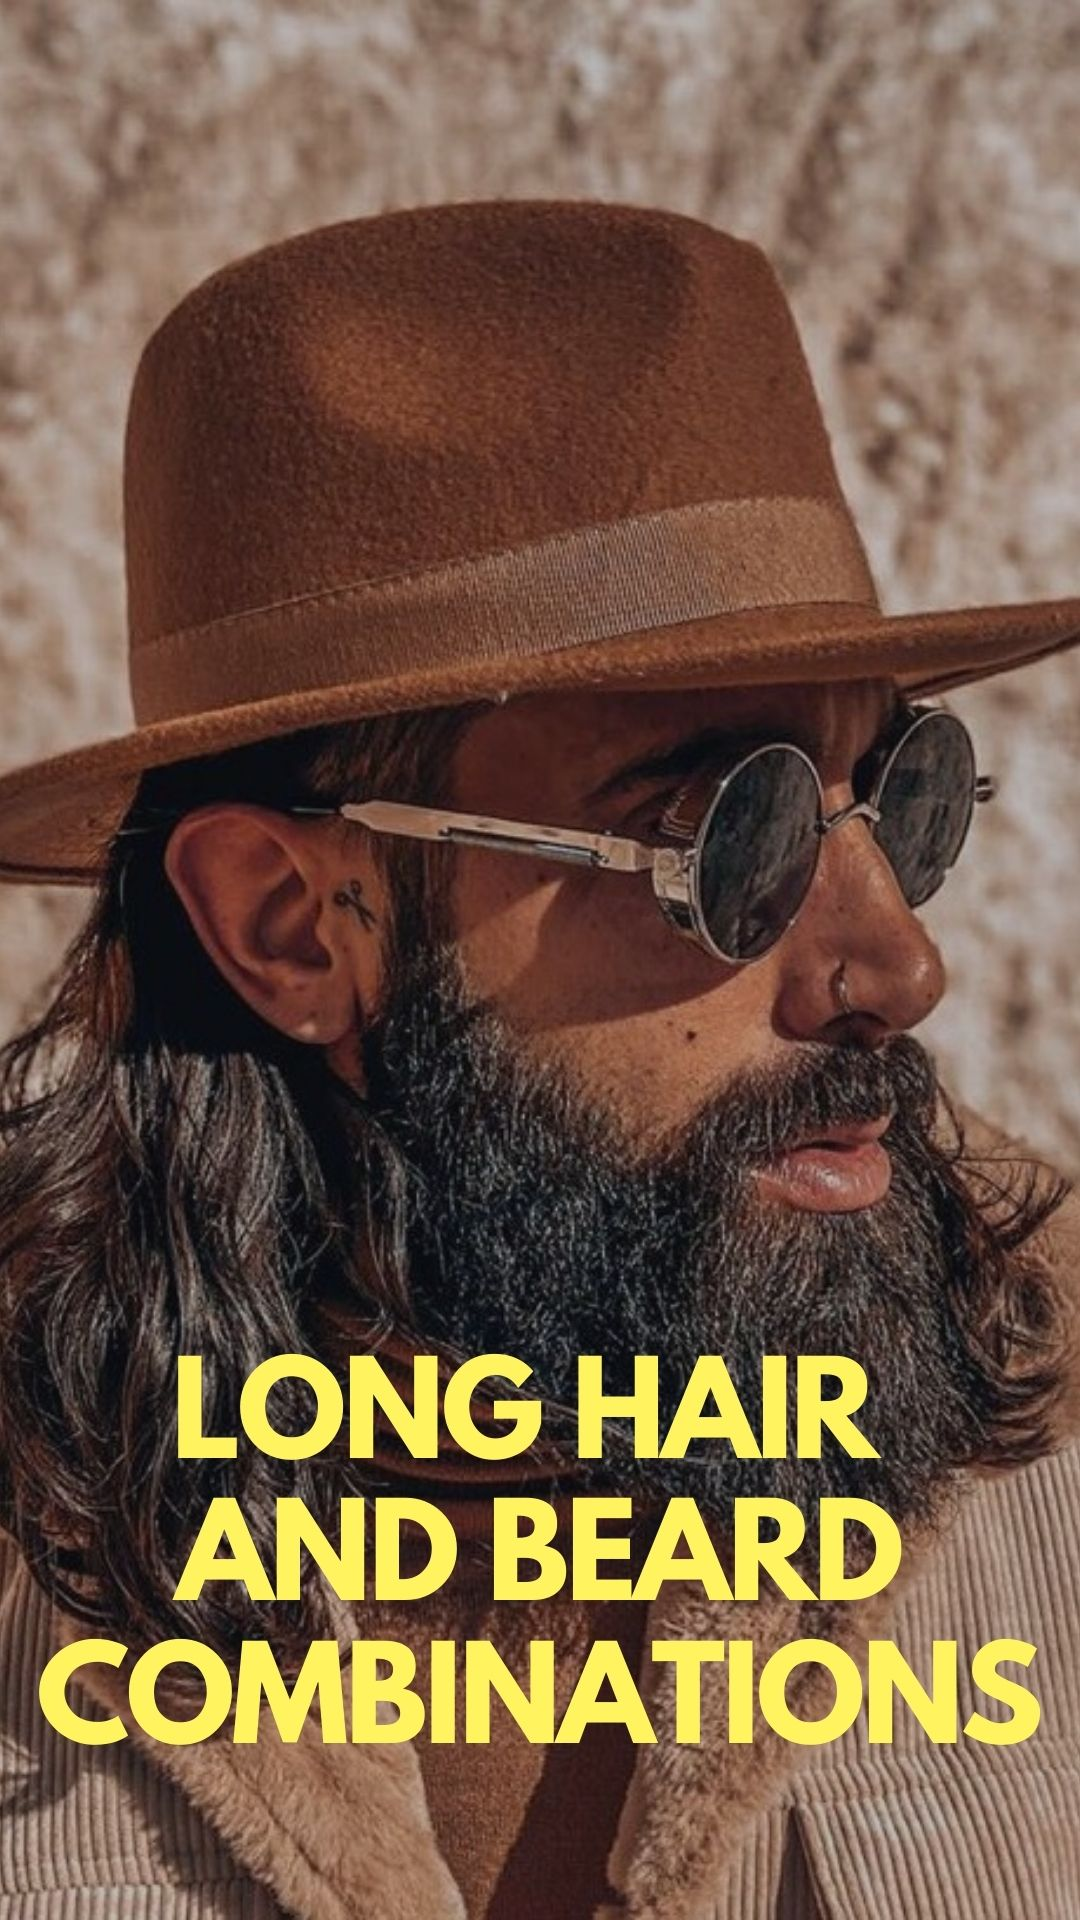 Long Hair and Beard Combination